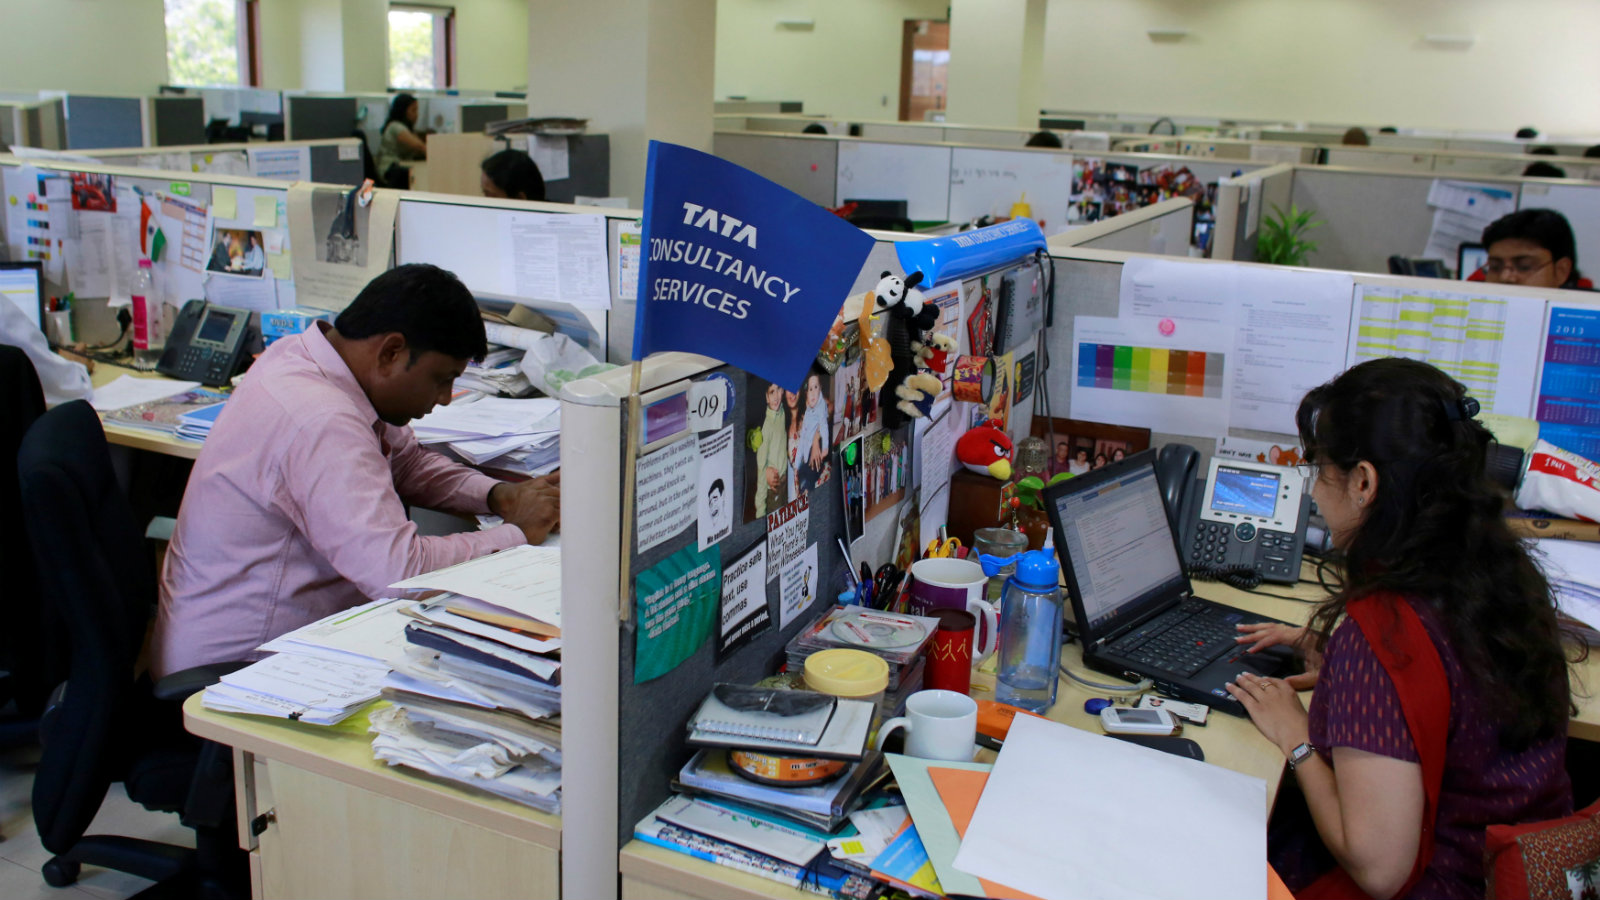 Employees of Tata Consultancy Services (TCS) work inside the company headquarters in Mumbai March 14, 2013.